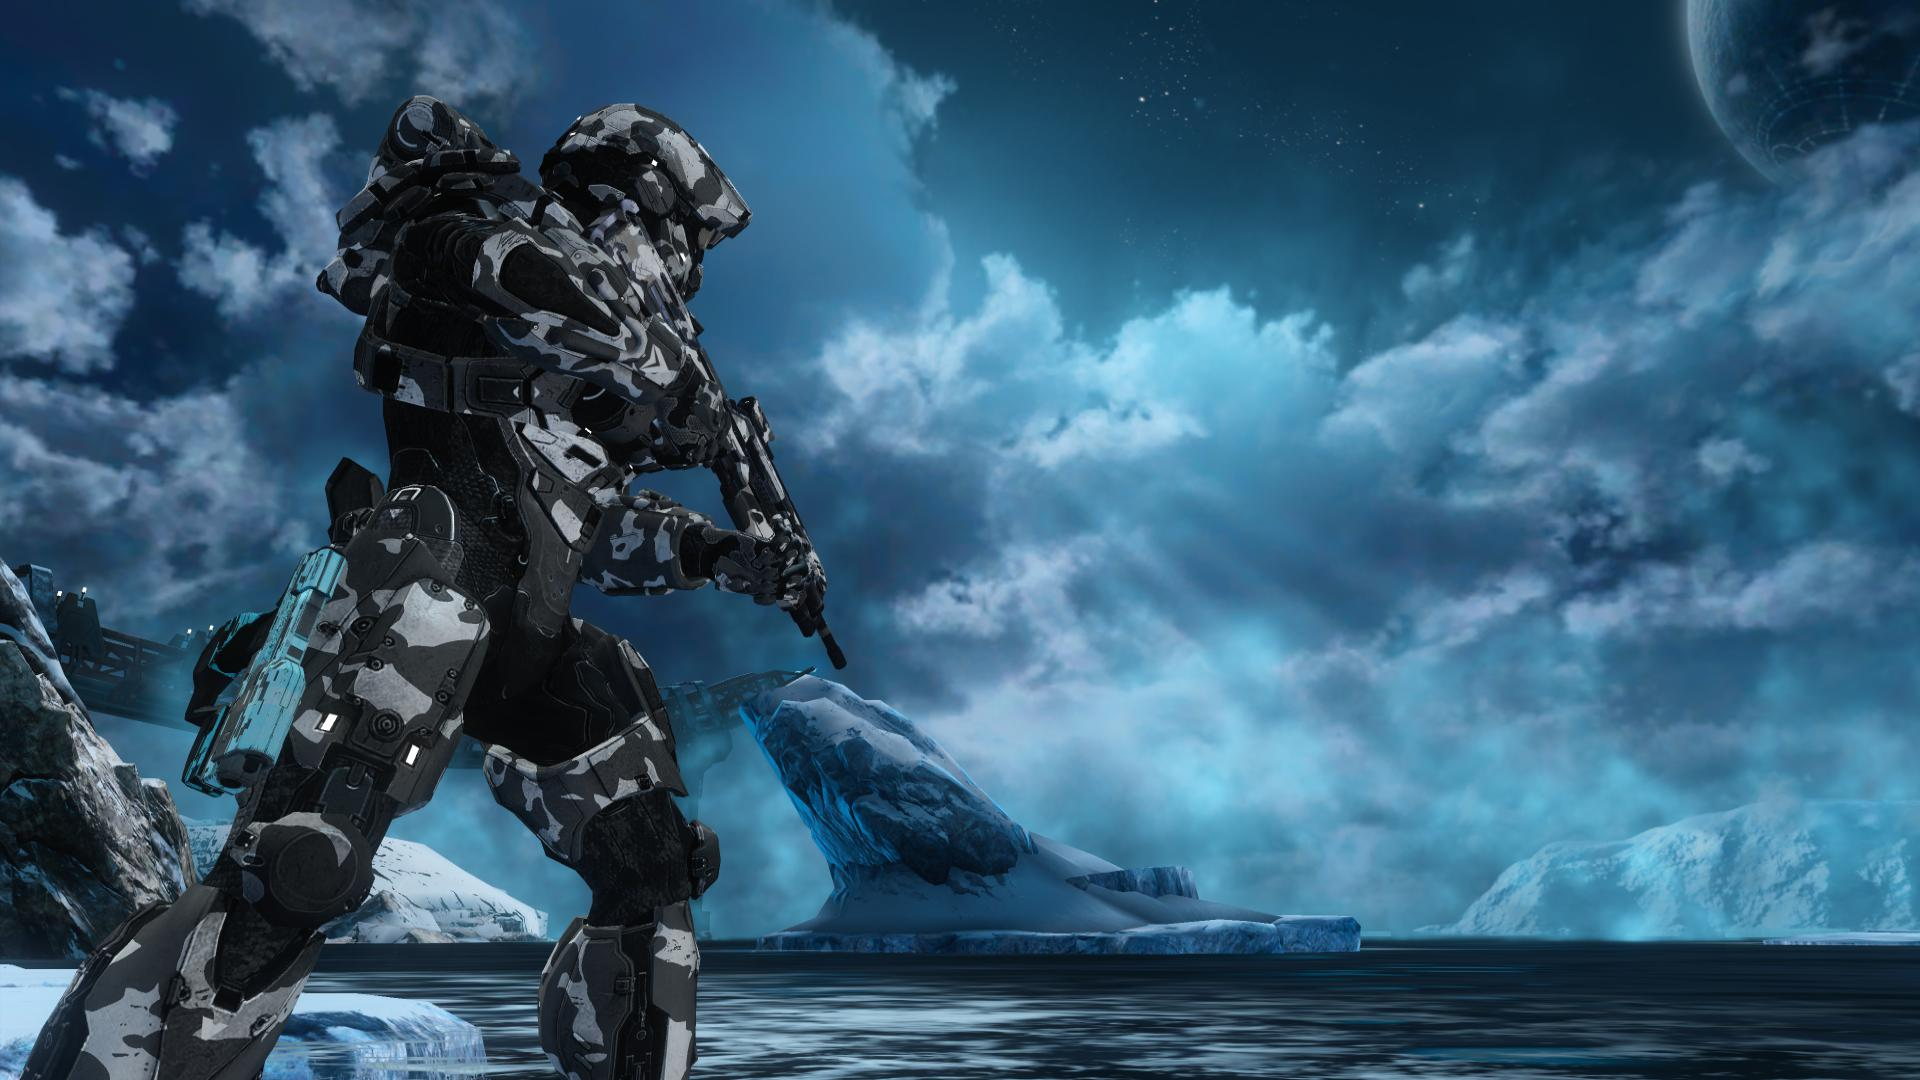 Awesome Halo 3 Screenshots Halo 4 screenshot 1920x1080